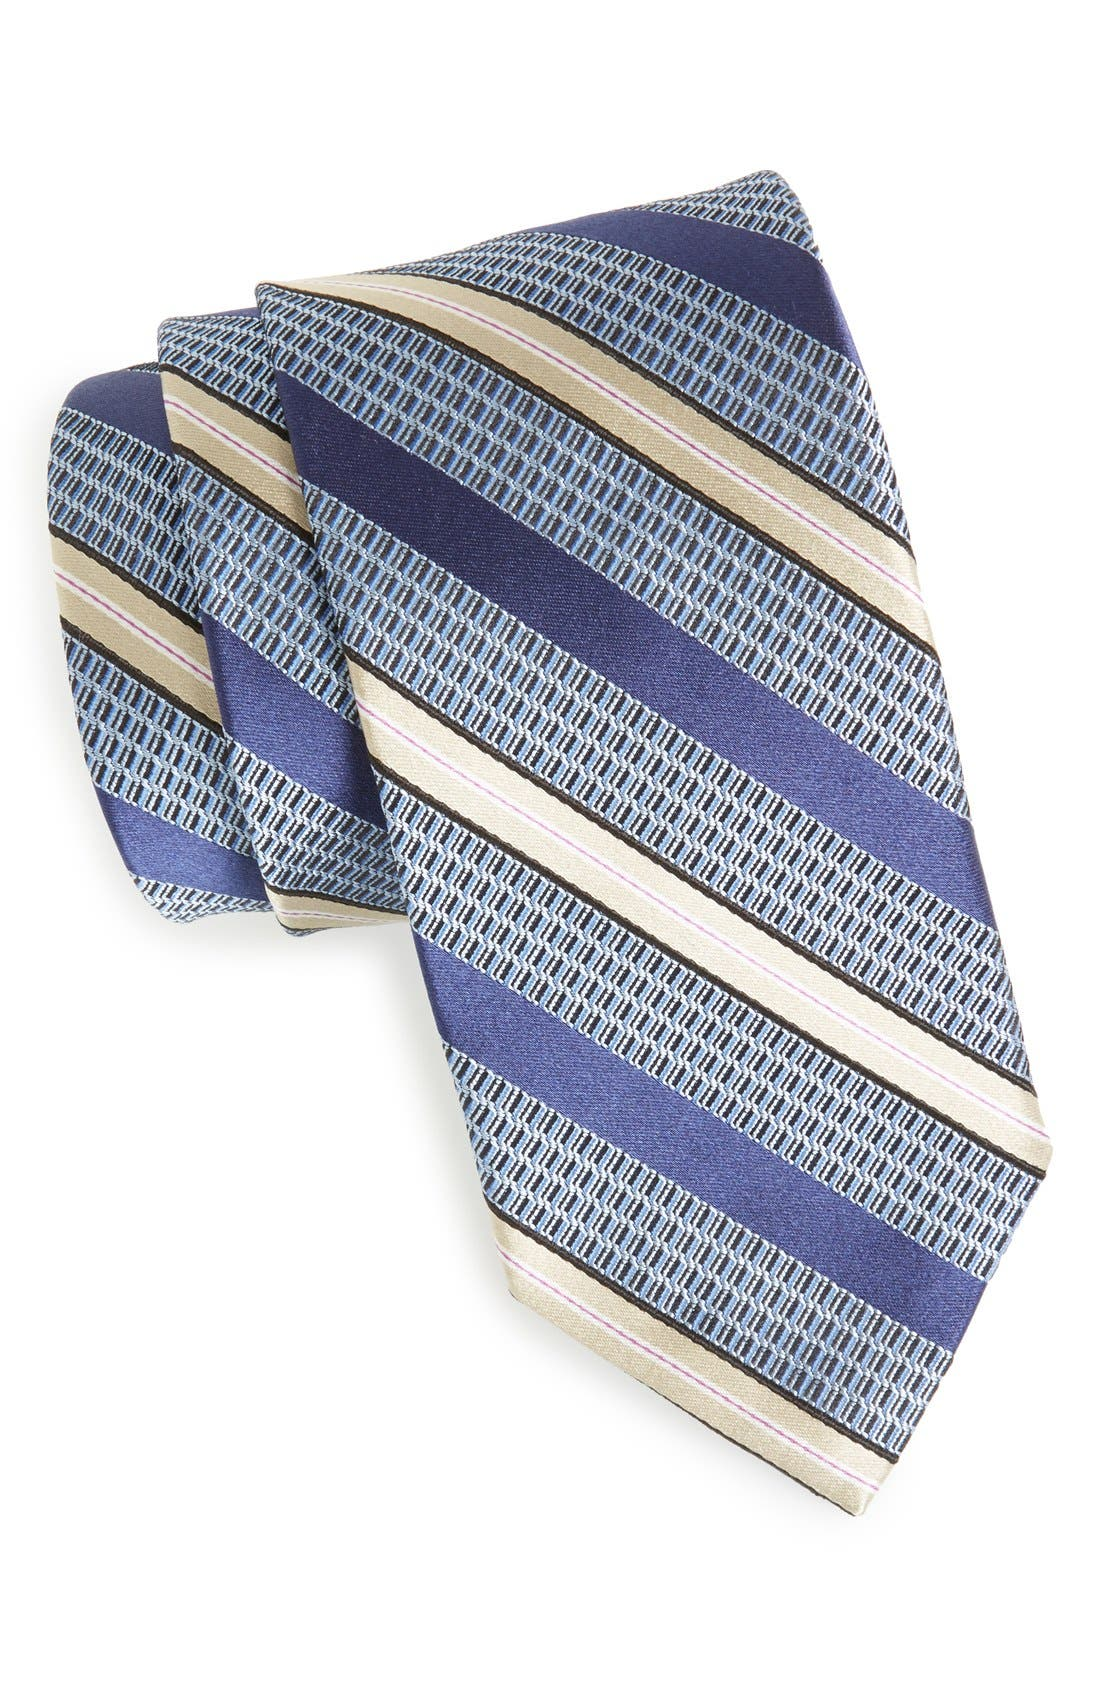 Woven Silk Tie,                         Main,                         color,